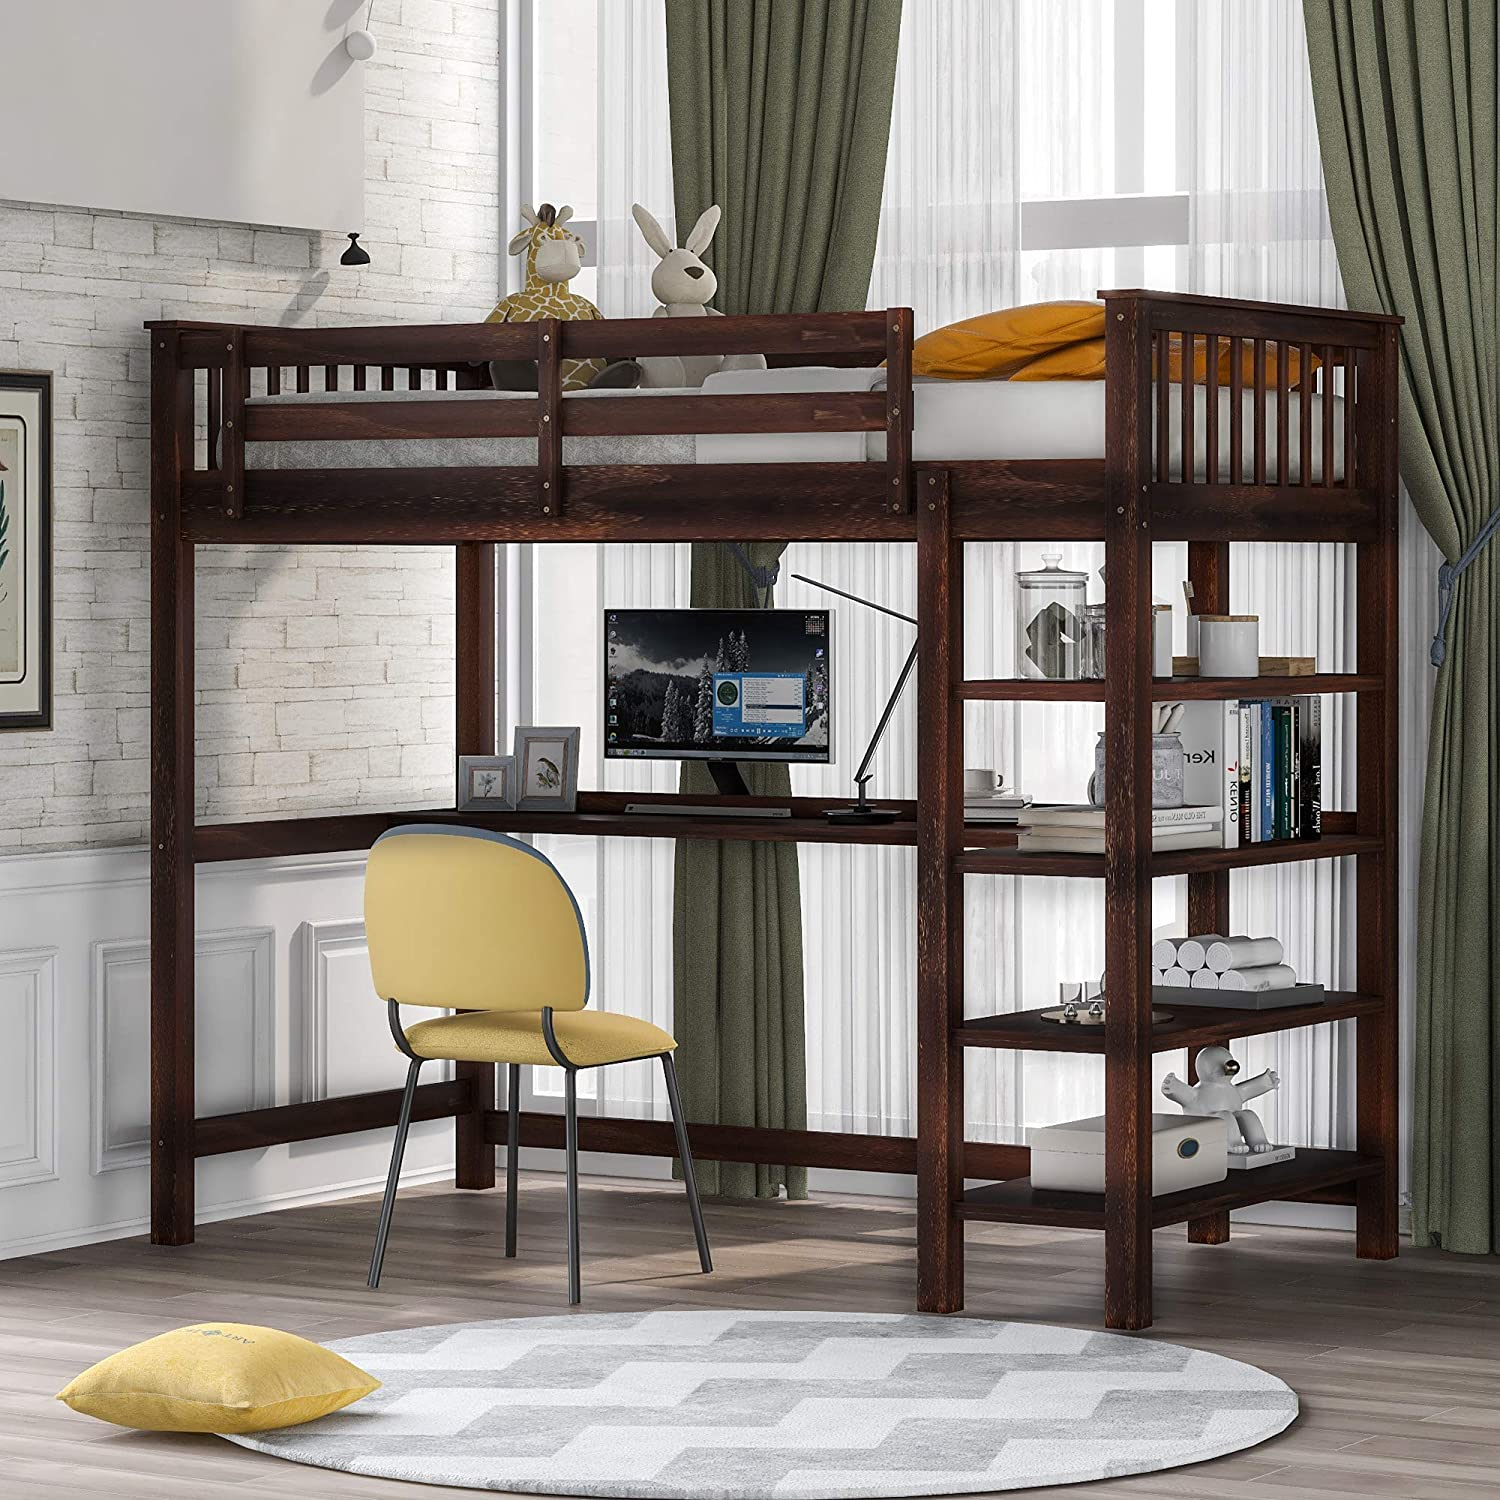 Amazon Com Softsea Wooden High Loft Bed With 4 Tier Shelves And Under Bed Desk For Boys Girls No Box Spring Needed Twin Kitchen Dining